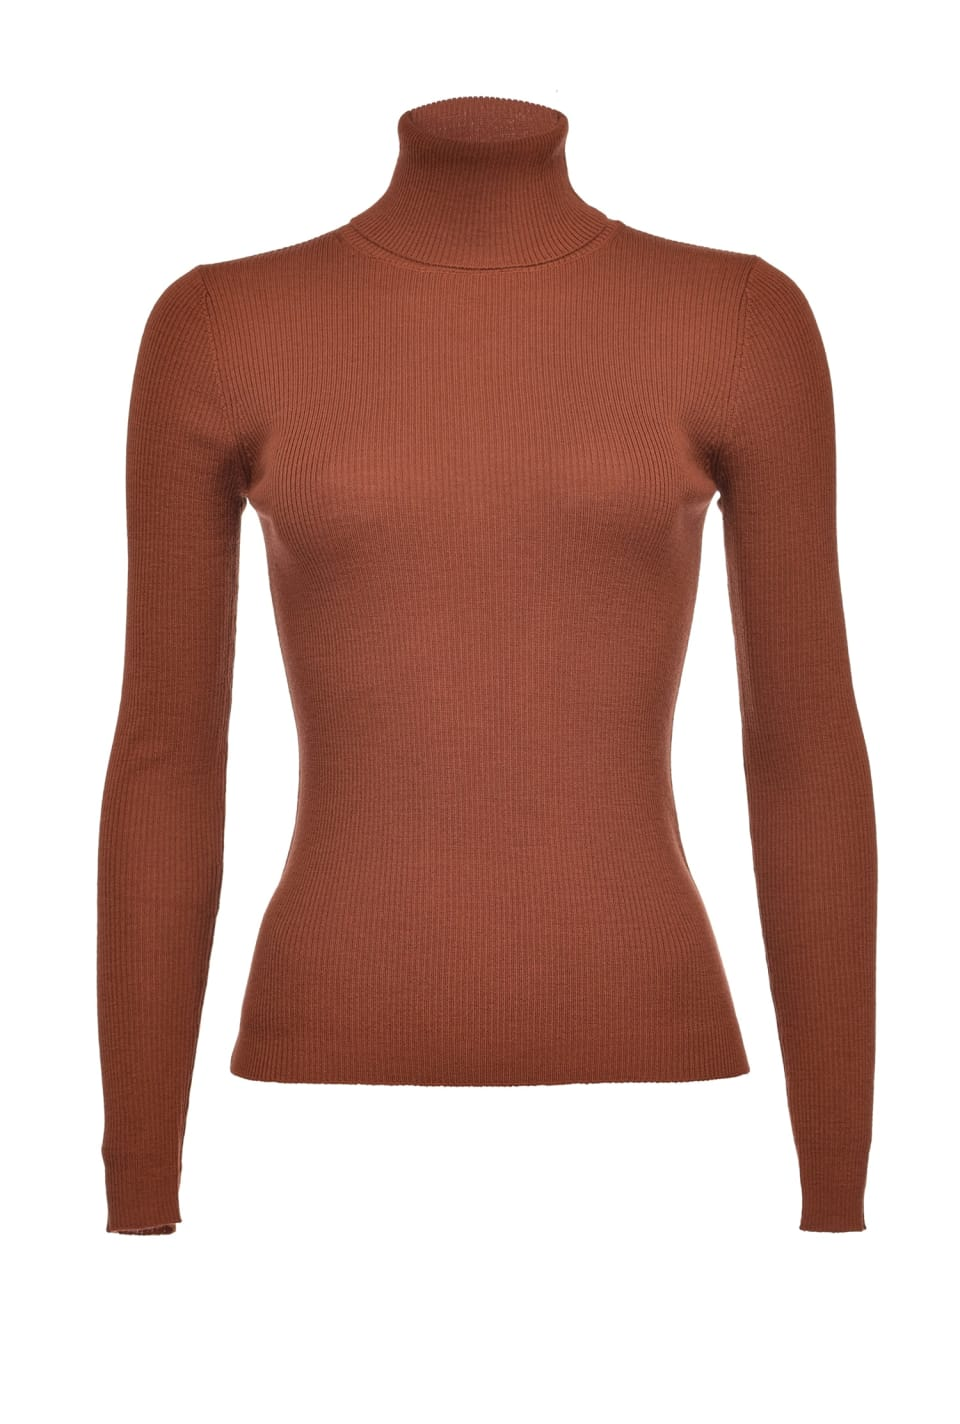 Snug-fitting wool turtleneck sweater - Pinko